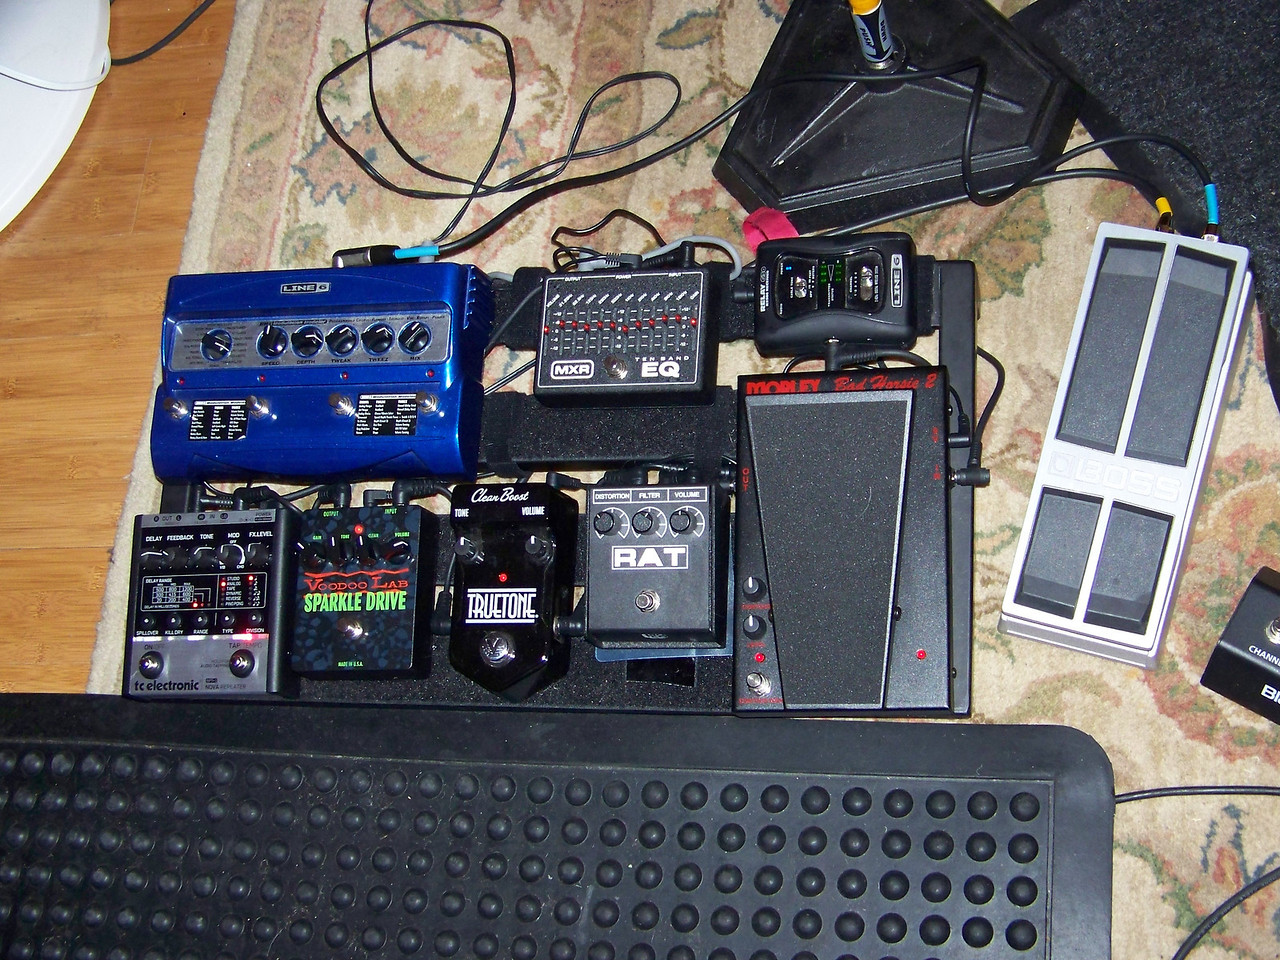 This is Mark's pedal board.  Using his feet, he can adjust volume, change sound qualities, and activate special effects while he plays.  Gee, you got enough technology there?  :-)